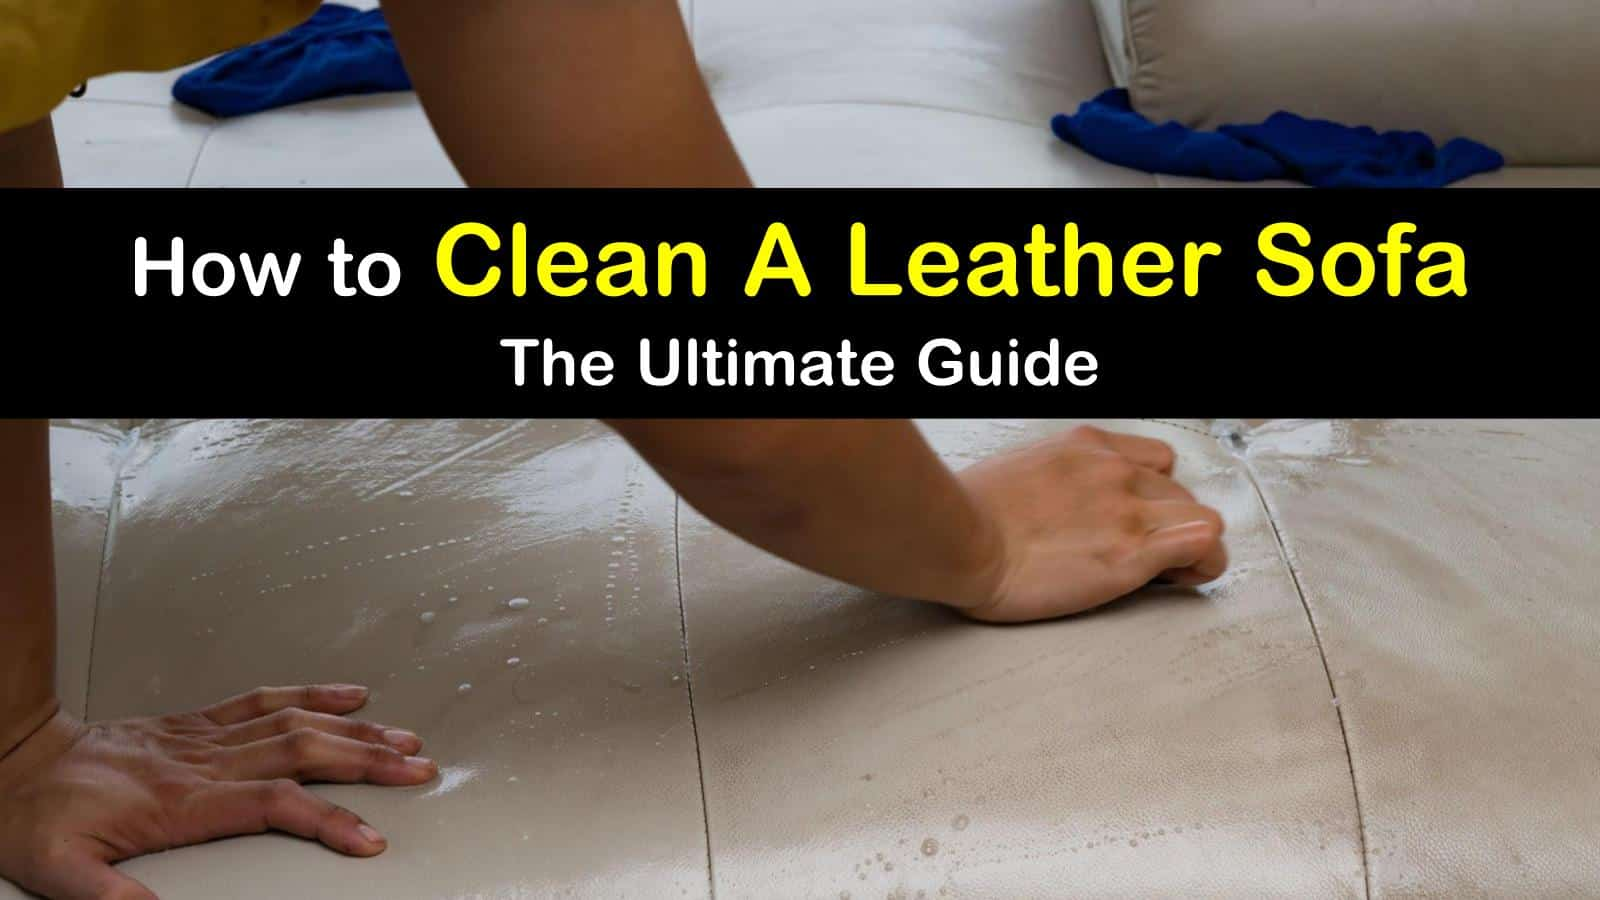 how to clean a leather sofa titleimg1